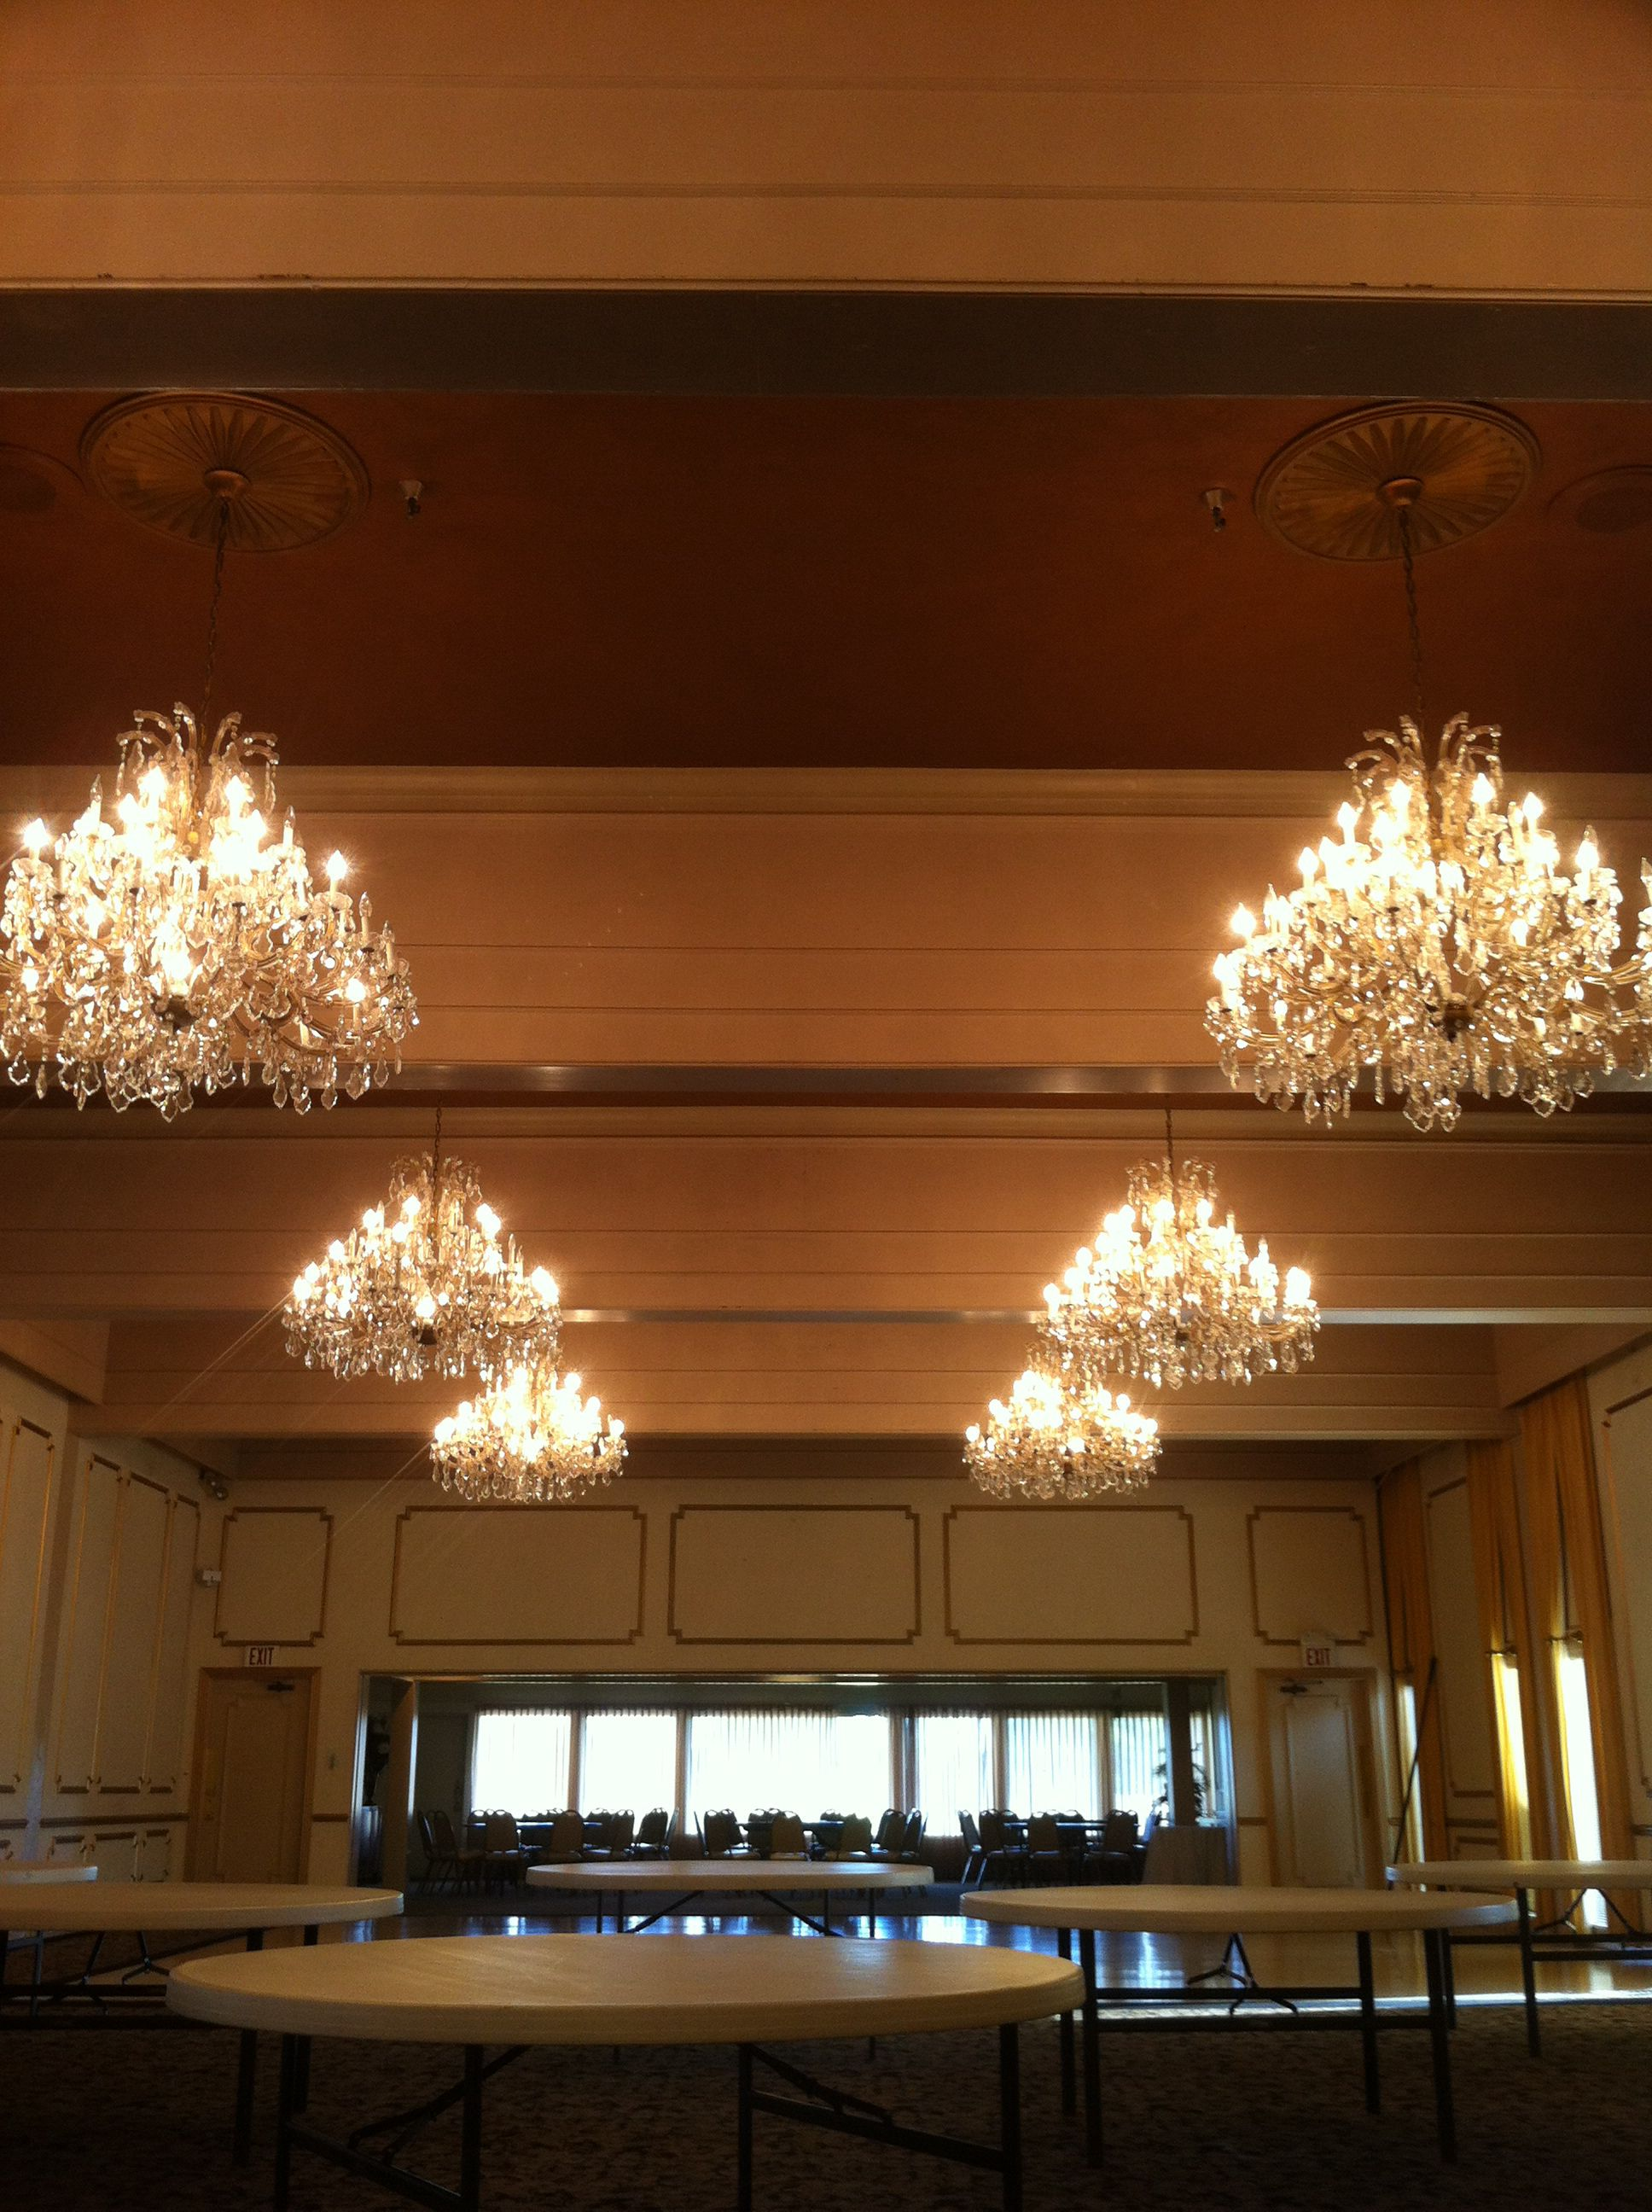 Chandeliers and gold paint, gold borders, ceiling color is dark and ...